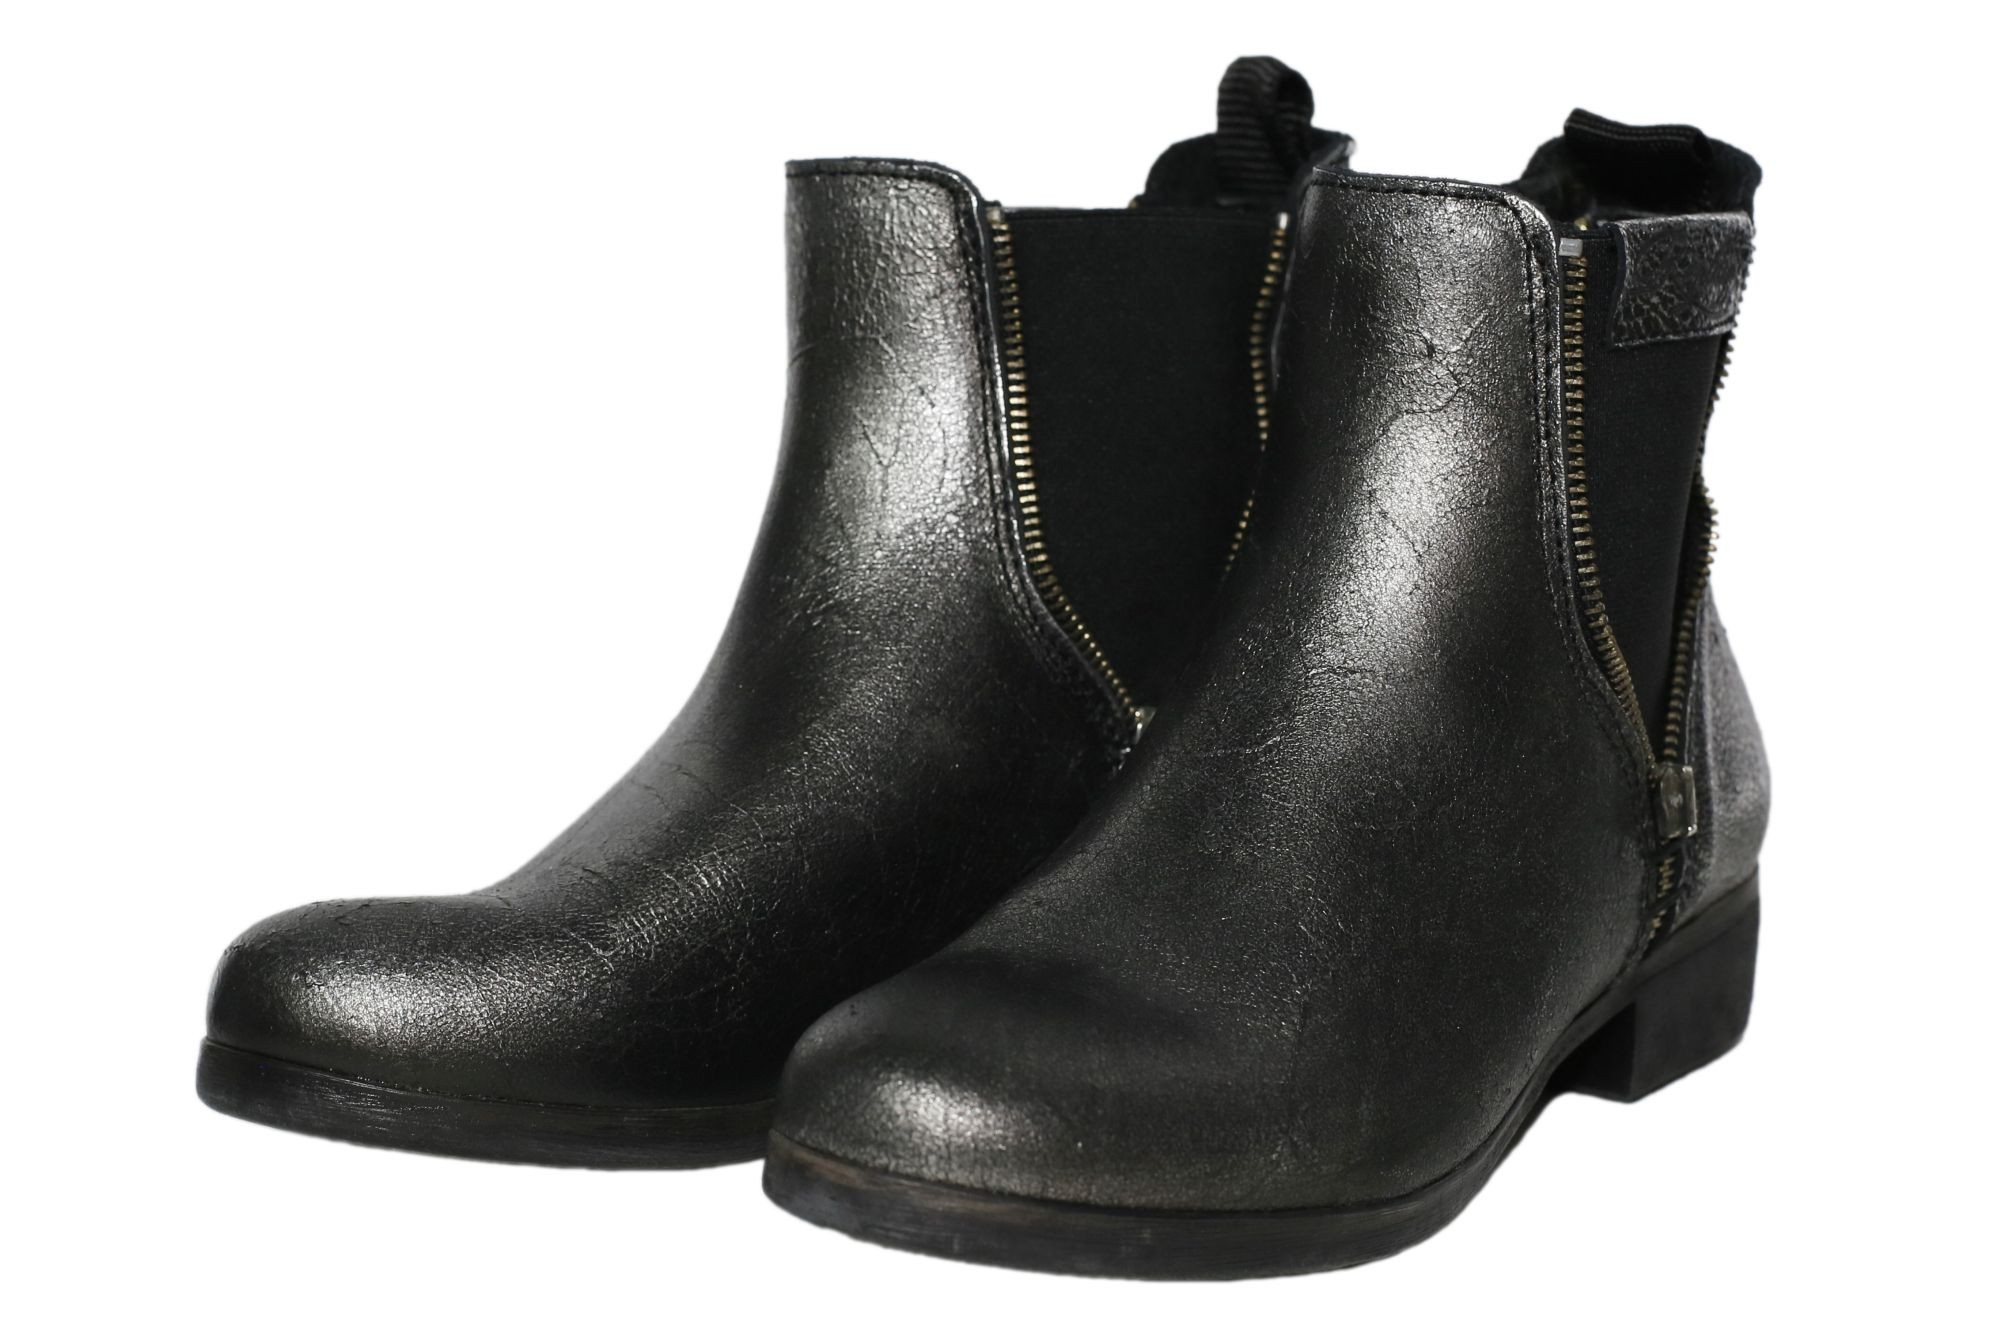 replay annie damen chelsea boots stiefel stiefeletten silber leder ebay. Black Bedroom Furniture Sets. Home Design Ideas